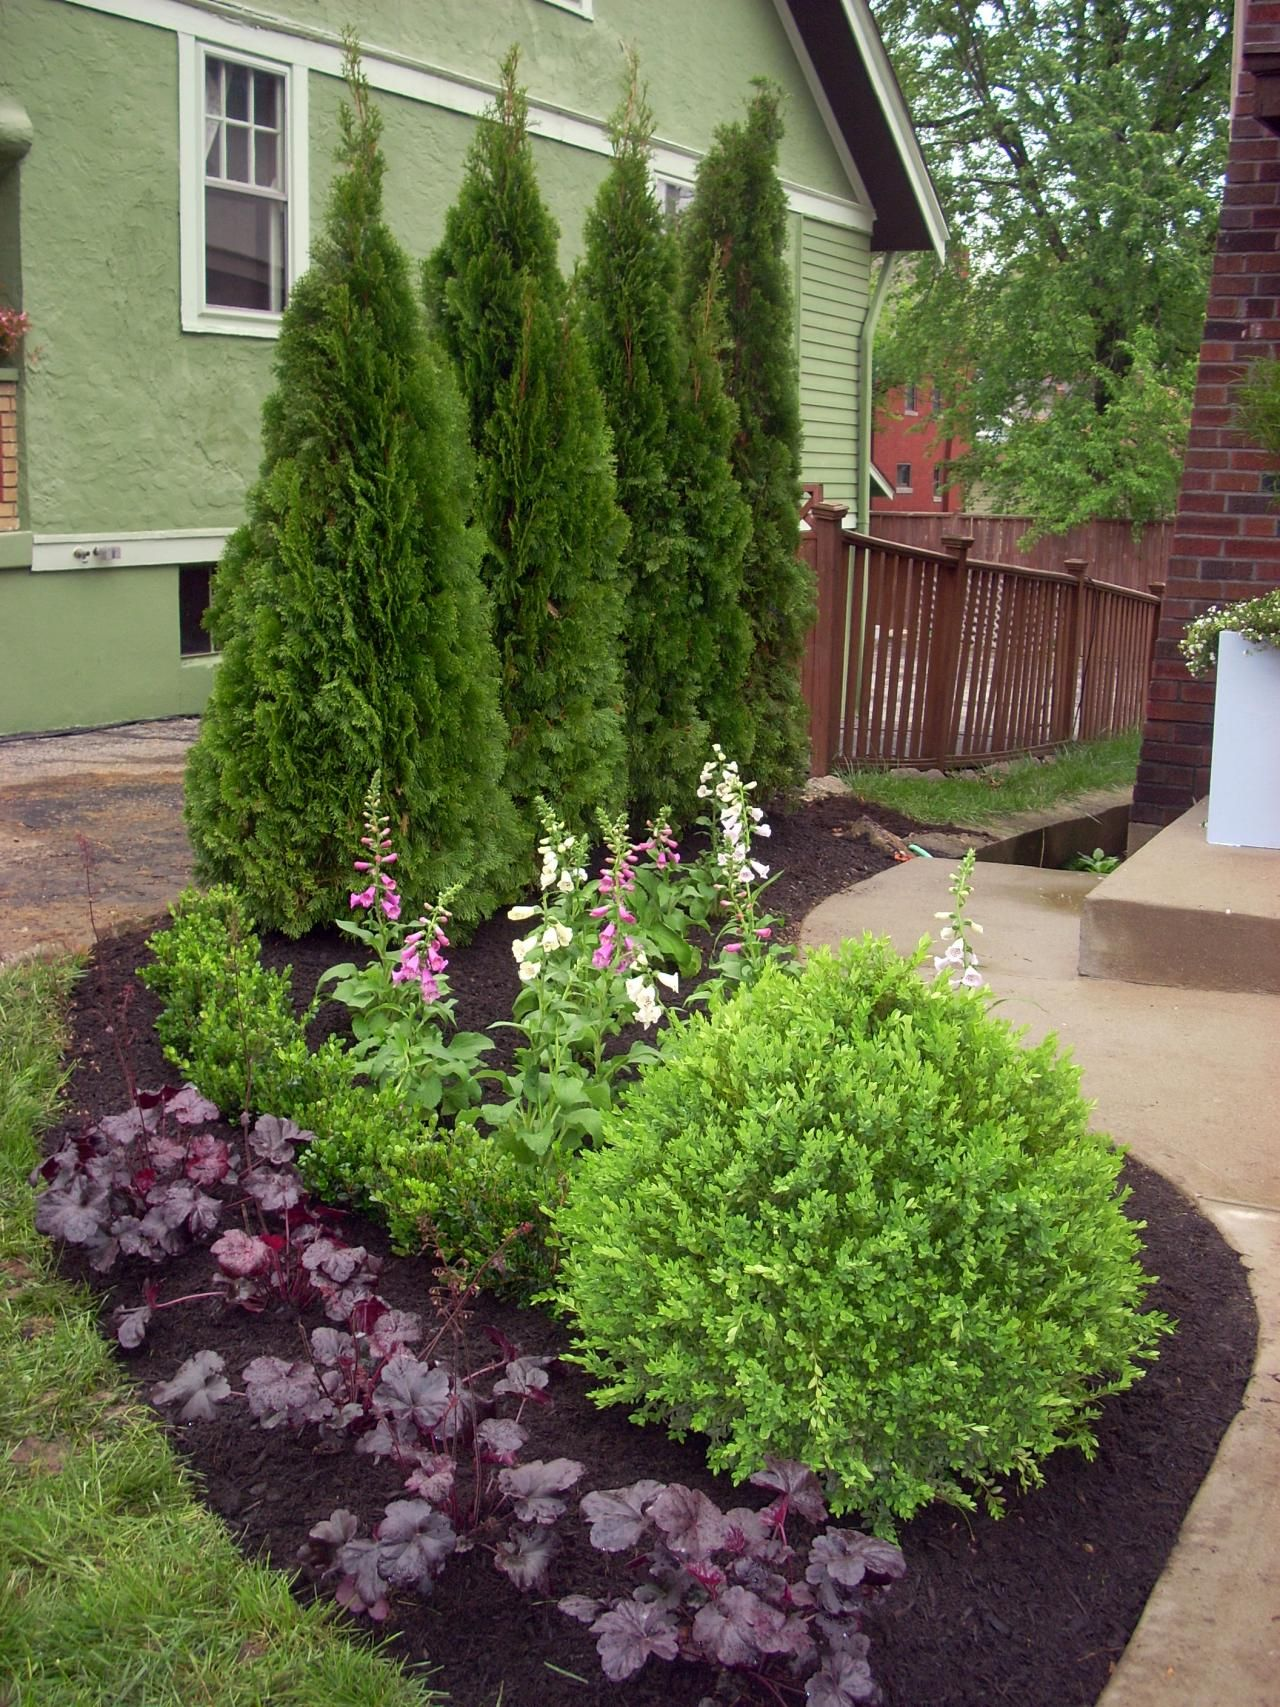 Garden trees for screening  Top  Pinterest Gallery   Hgtv Decorating and Interiors